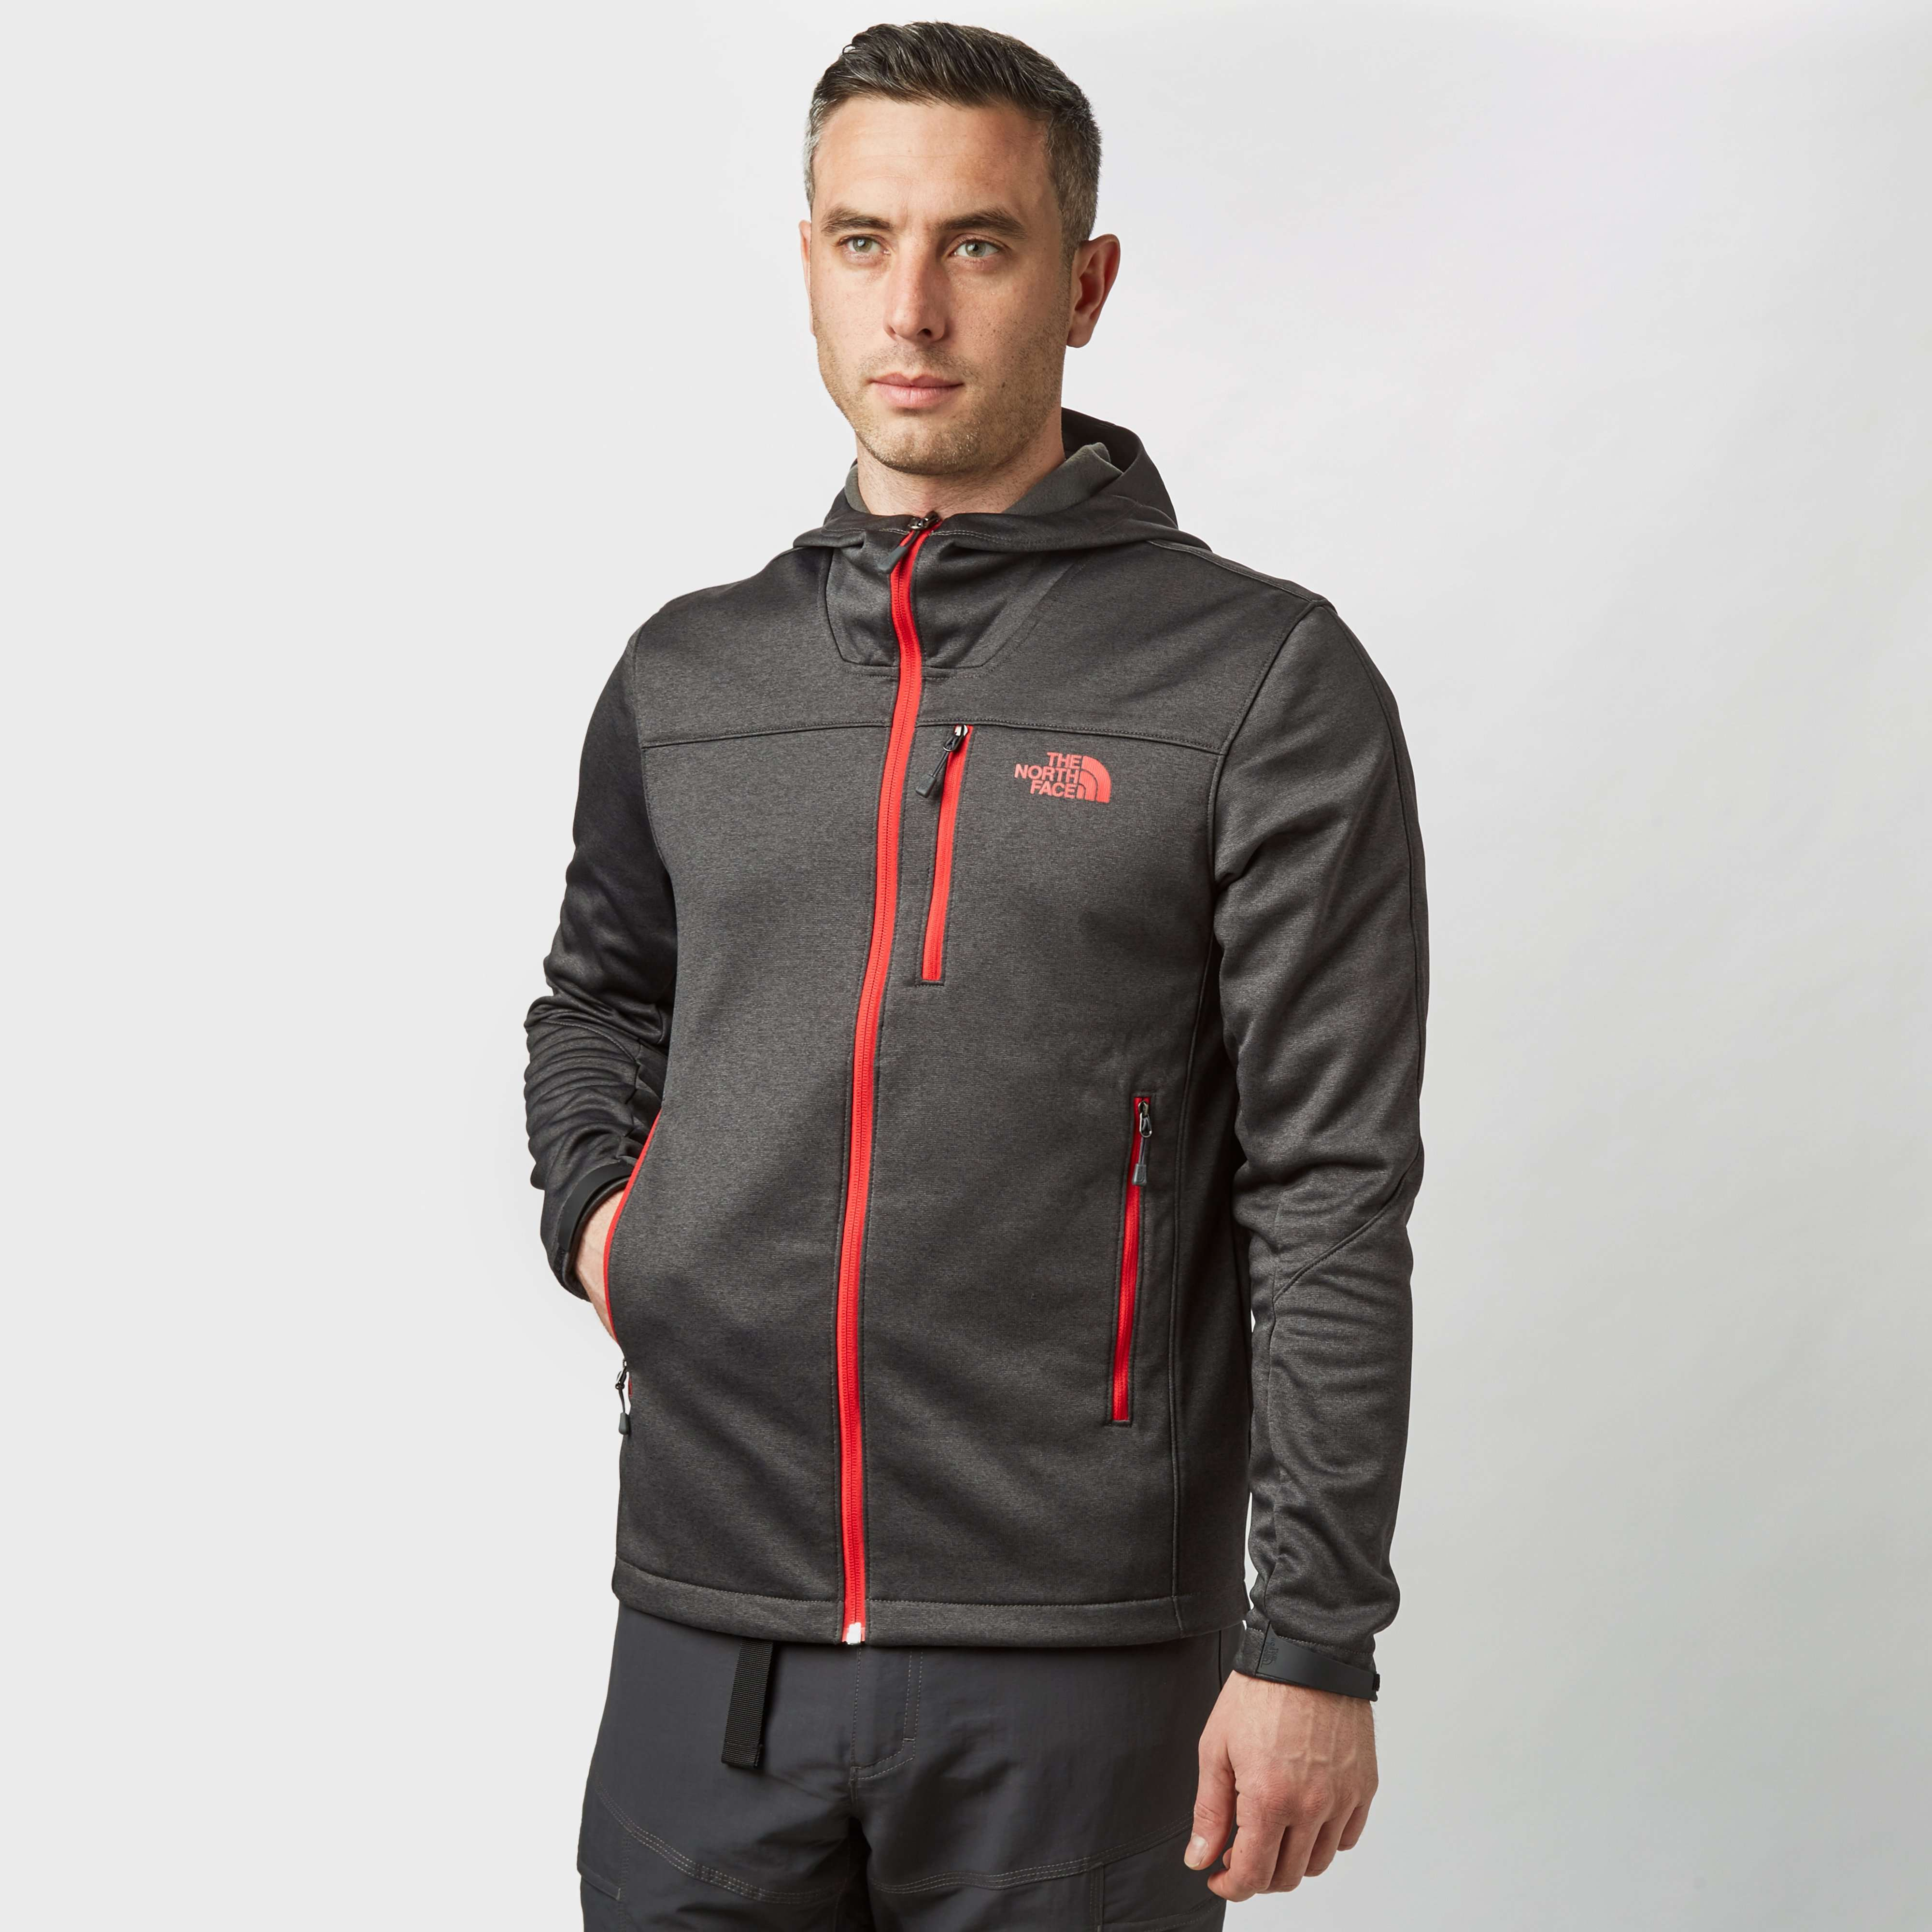 THE NORTH FACE Men's Tech Fleece